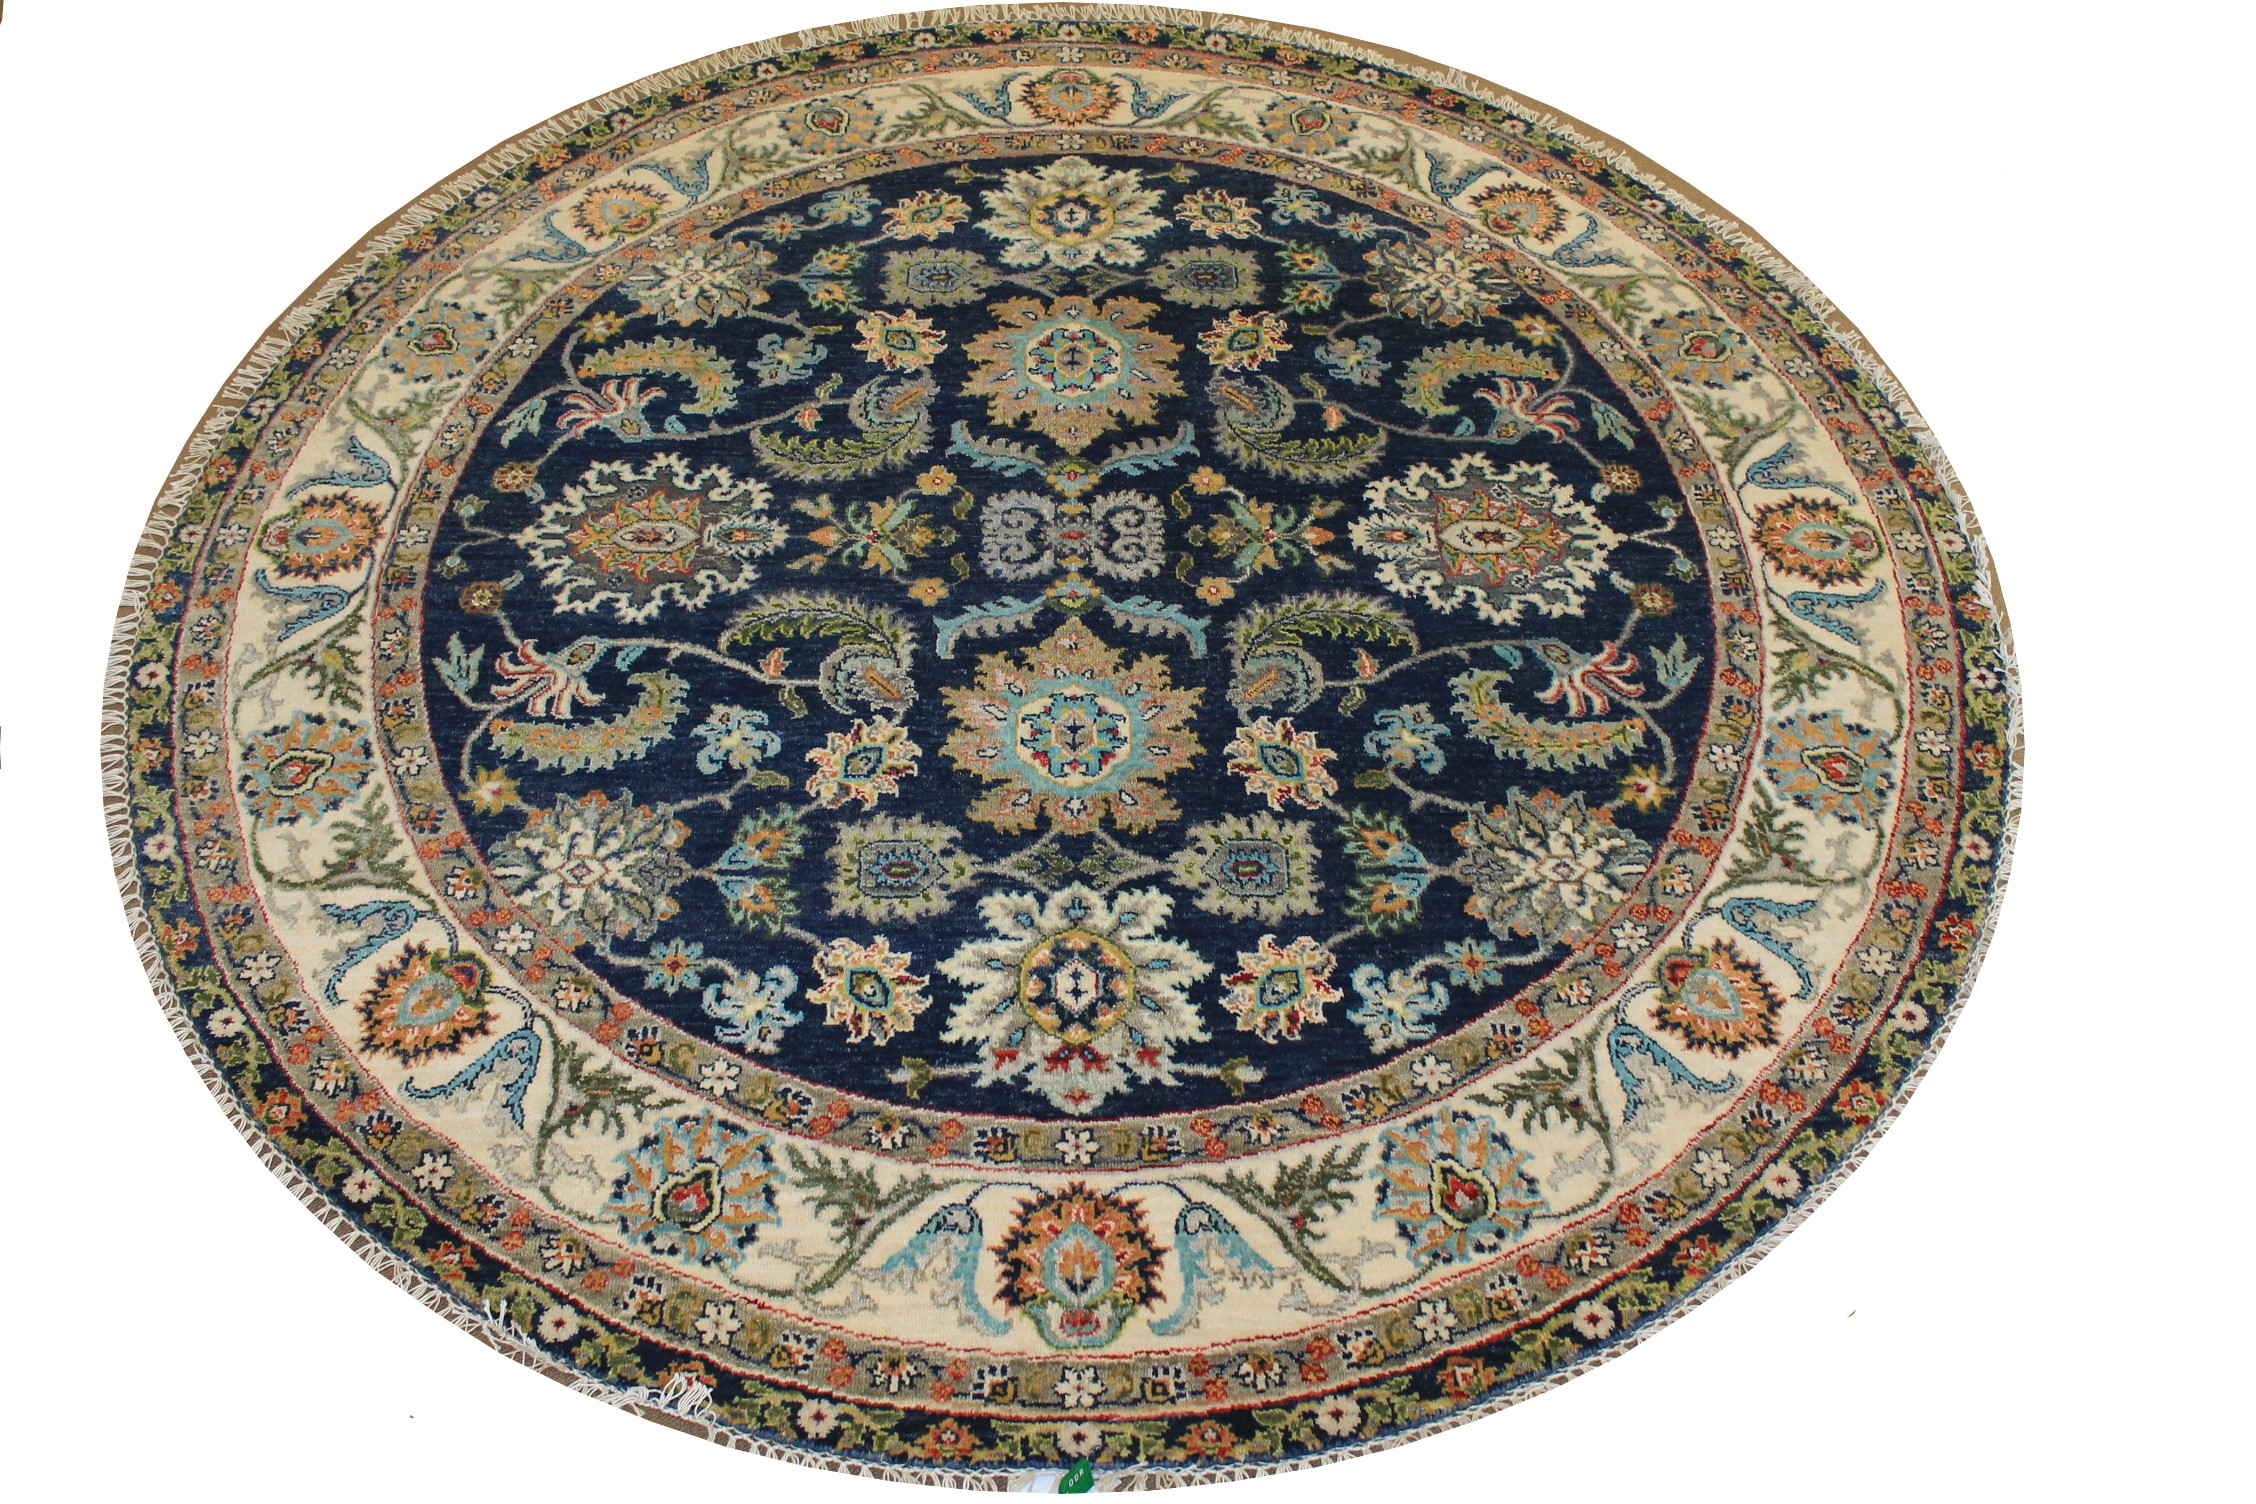 6 ft. - 7 ft. Round & Square Traditional Hand Knotted Wool Area Rug - MR024743